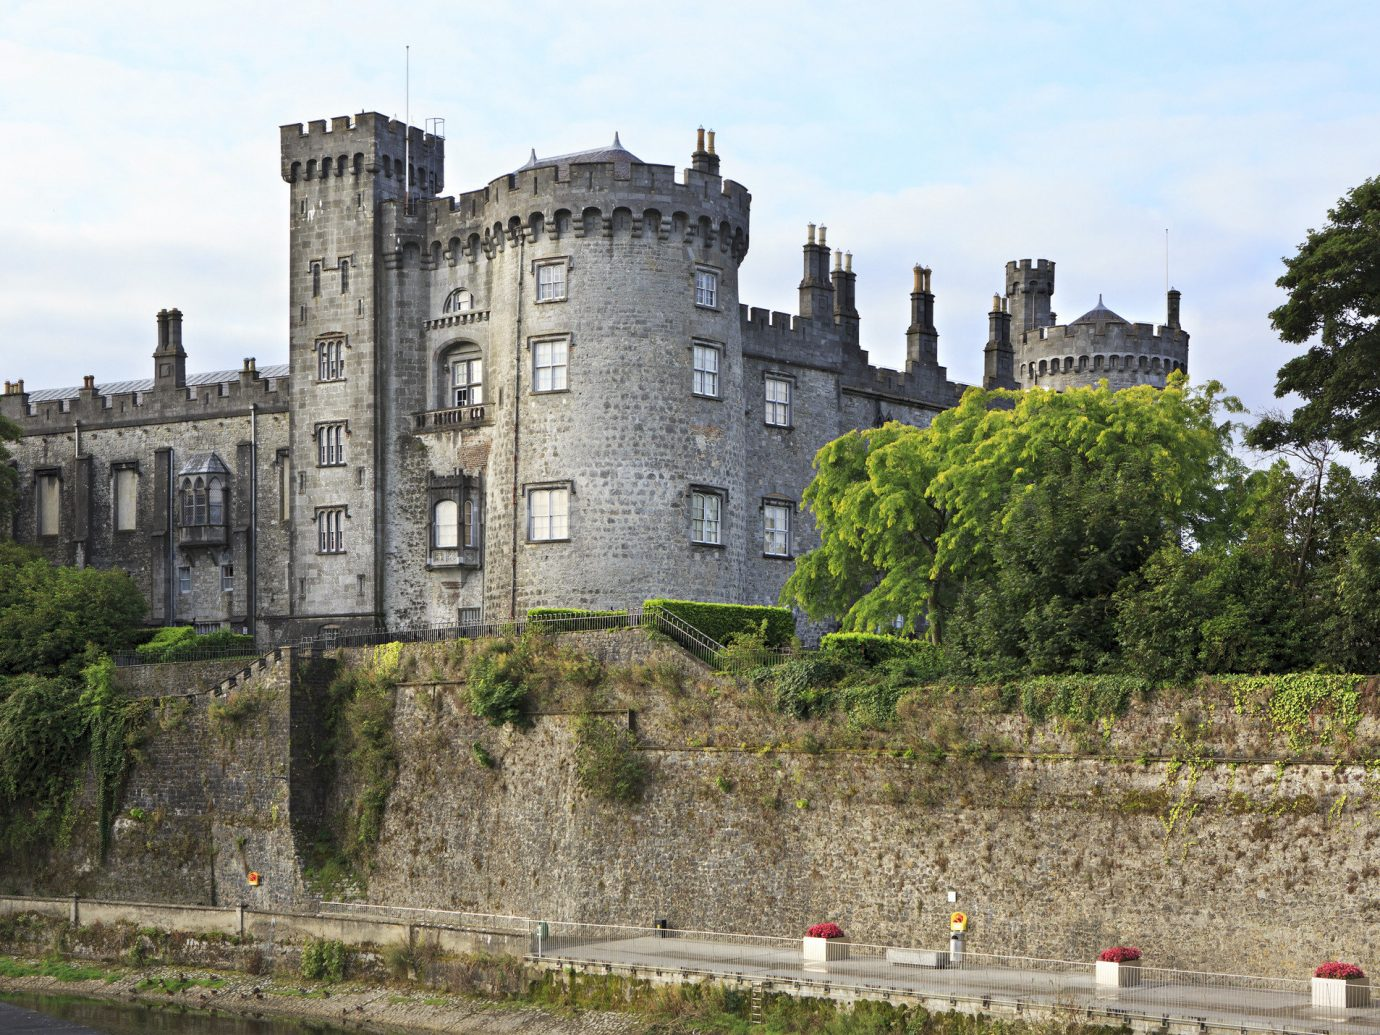 Dublin Ireland Trip Ideas building tree outdoor sky castle medieval architecture château stately home tours fortification estate national trust for places of historic interest or natural beauty moat old